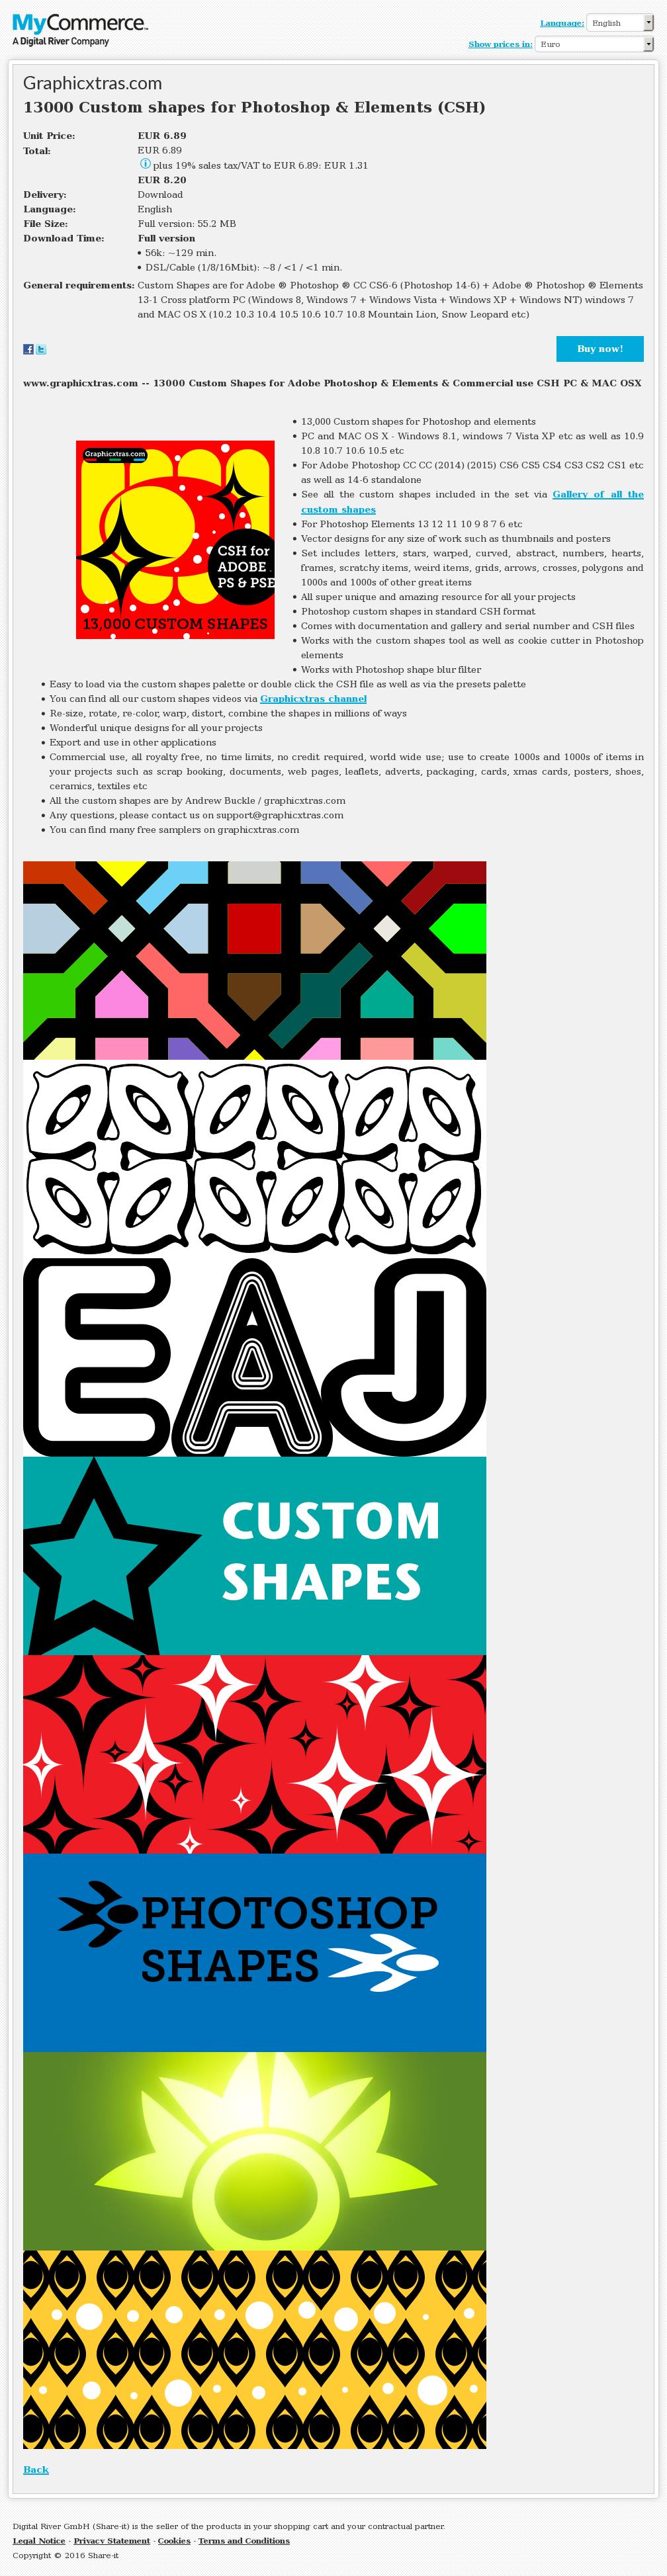 Custom Shapes Photoshop Elements Csh Alternative